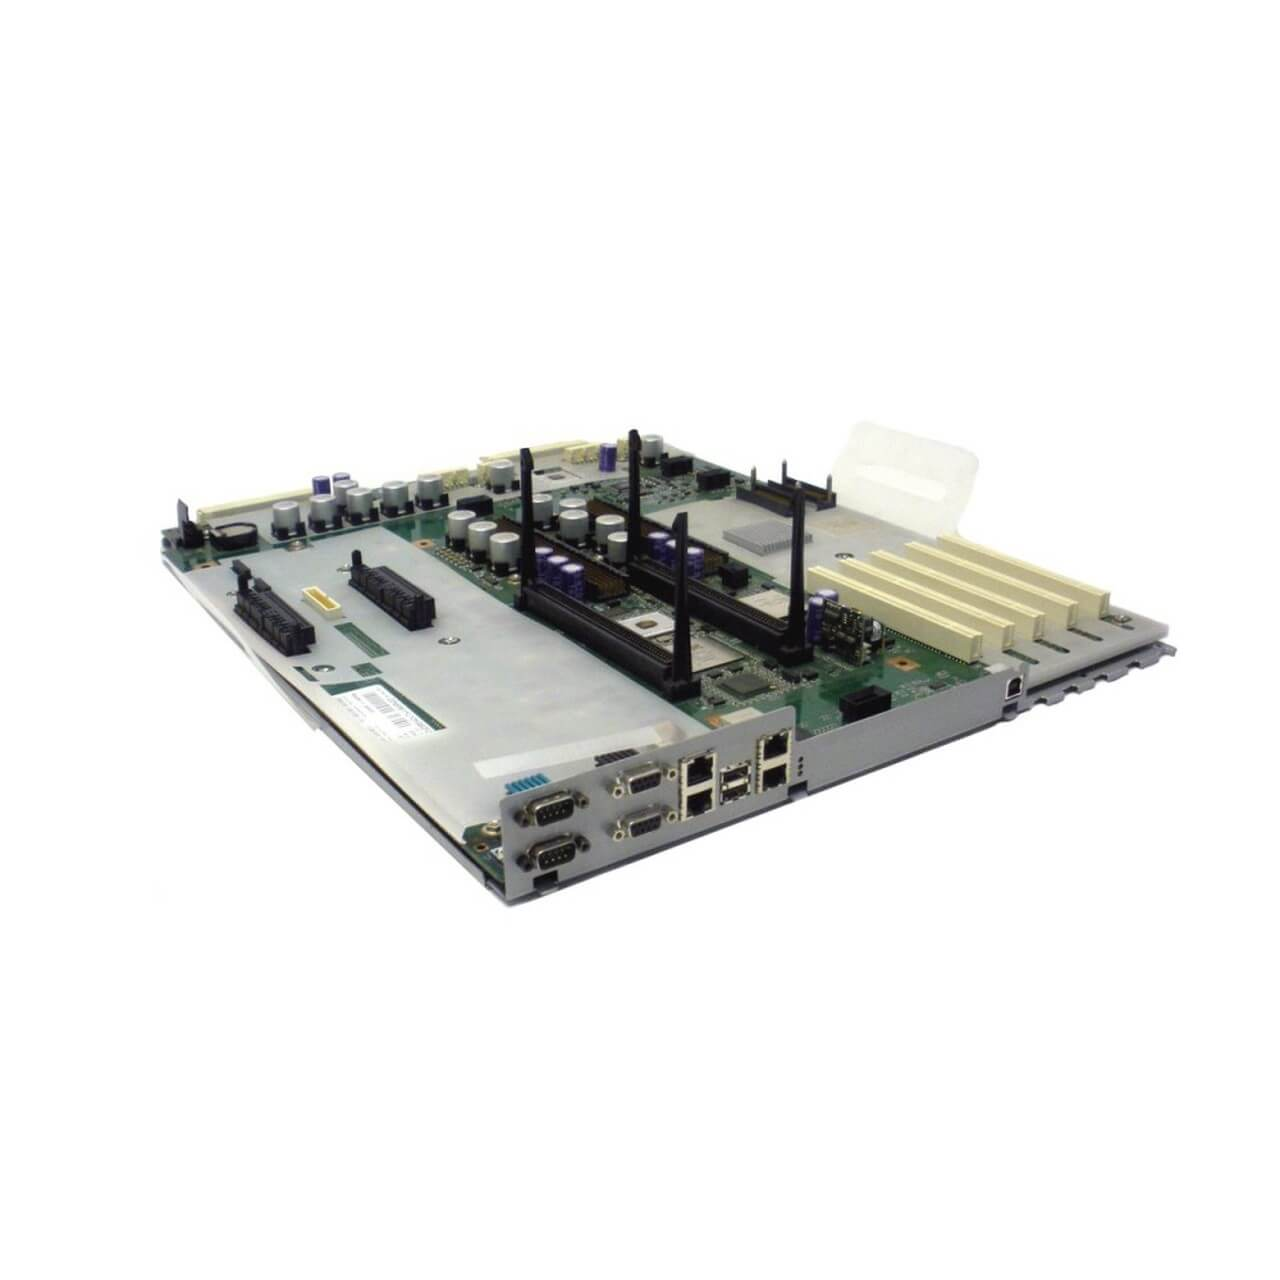 Buy & save on computer server backplanes from your trusted partners at Flagship Technologies. Browse our revolving inventory of refurbished server backplanes online and get the best deals to maintain or upgrade your IT project or data center.